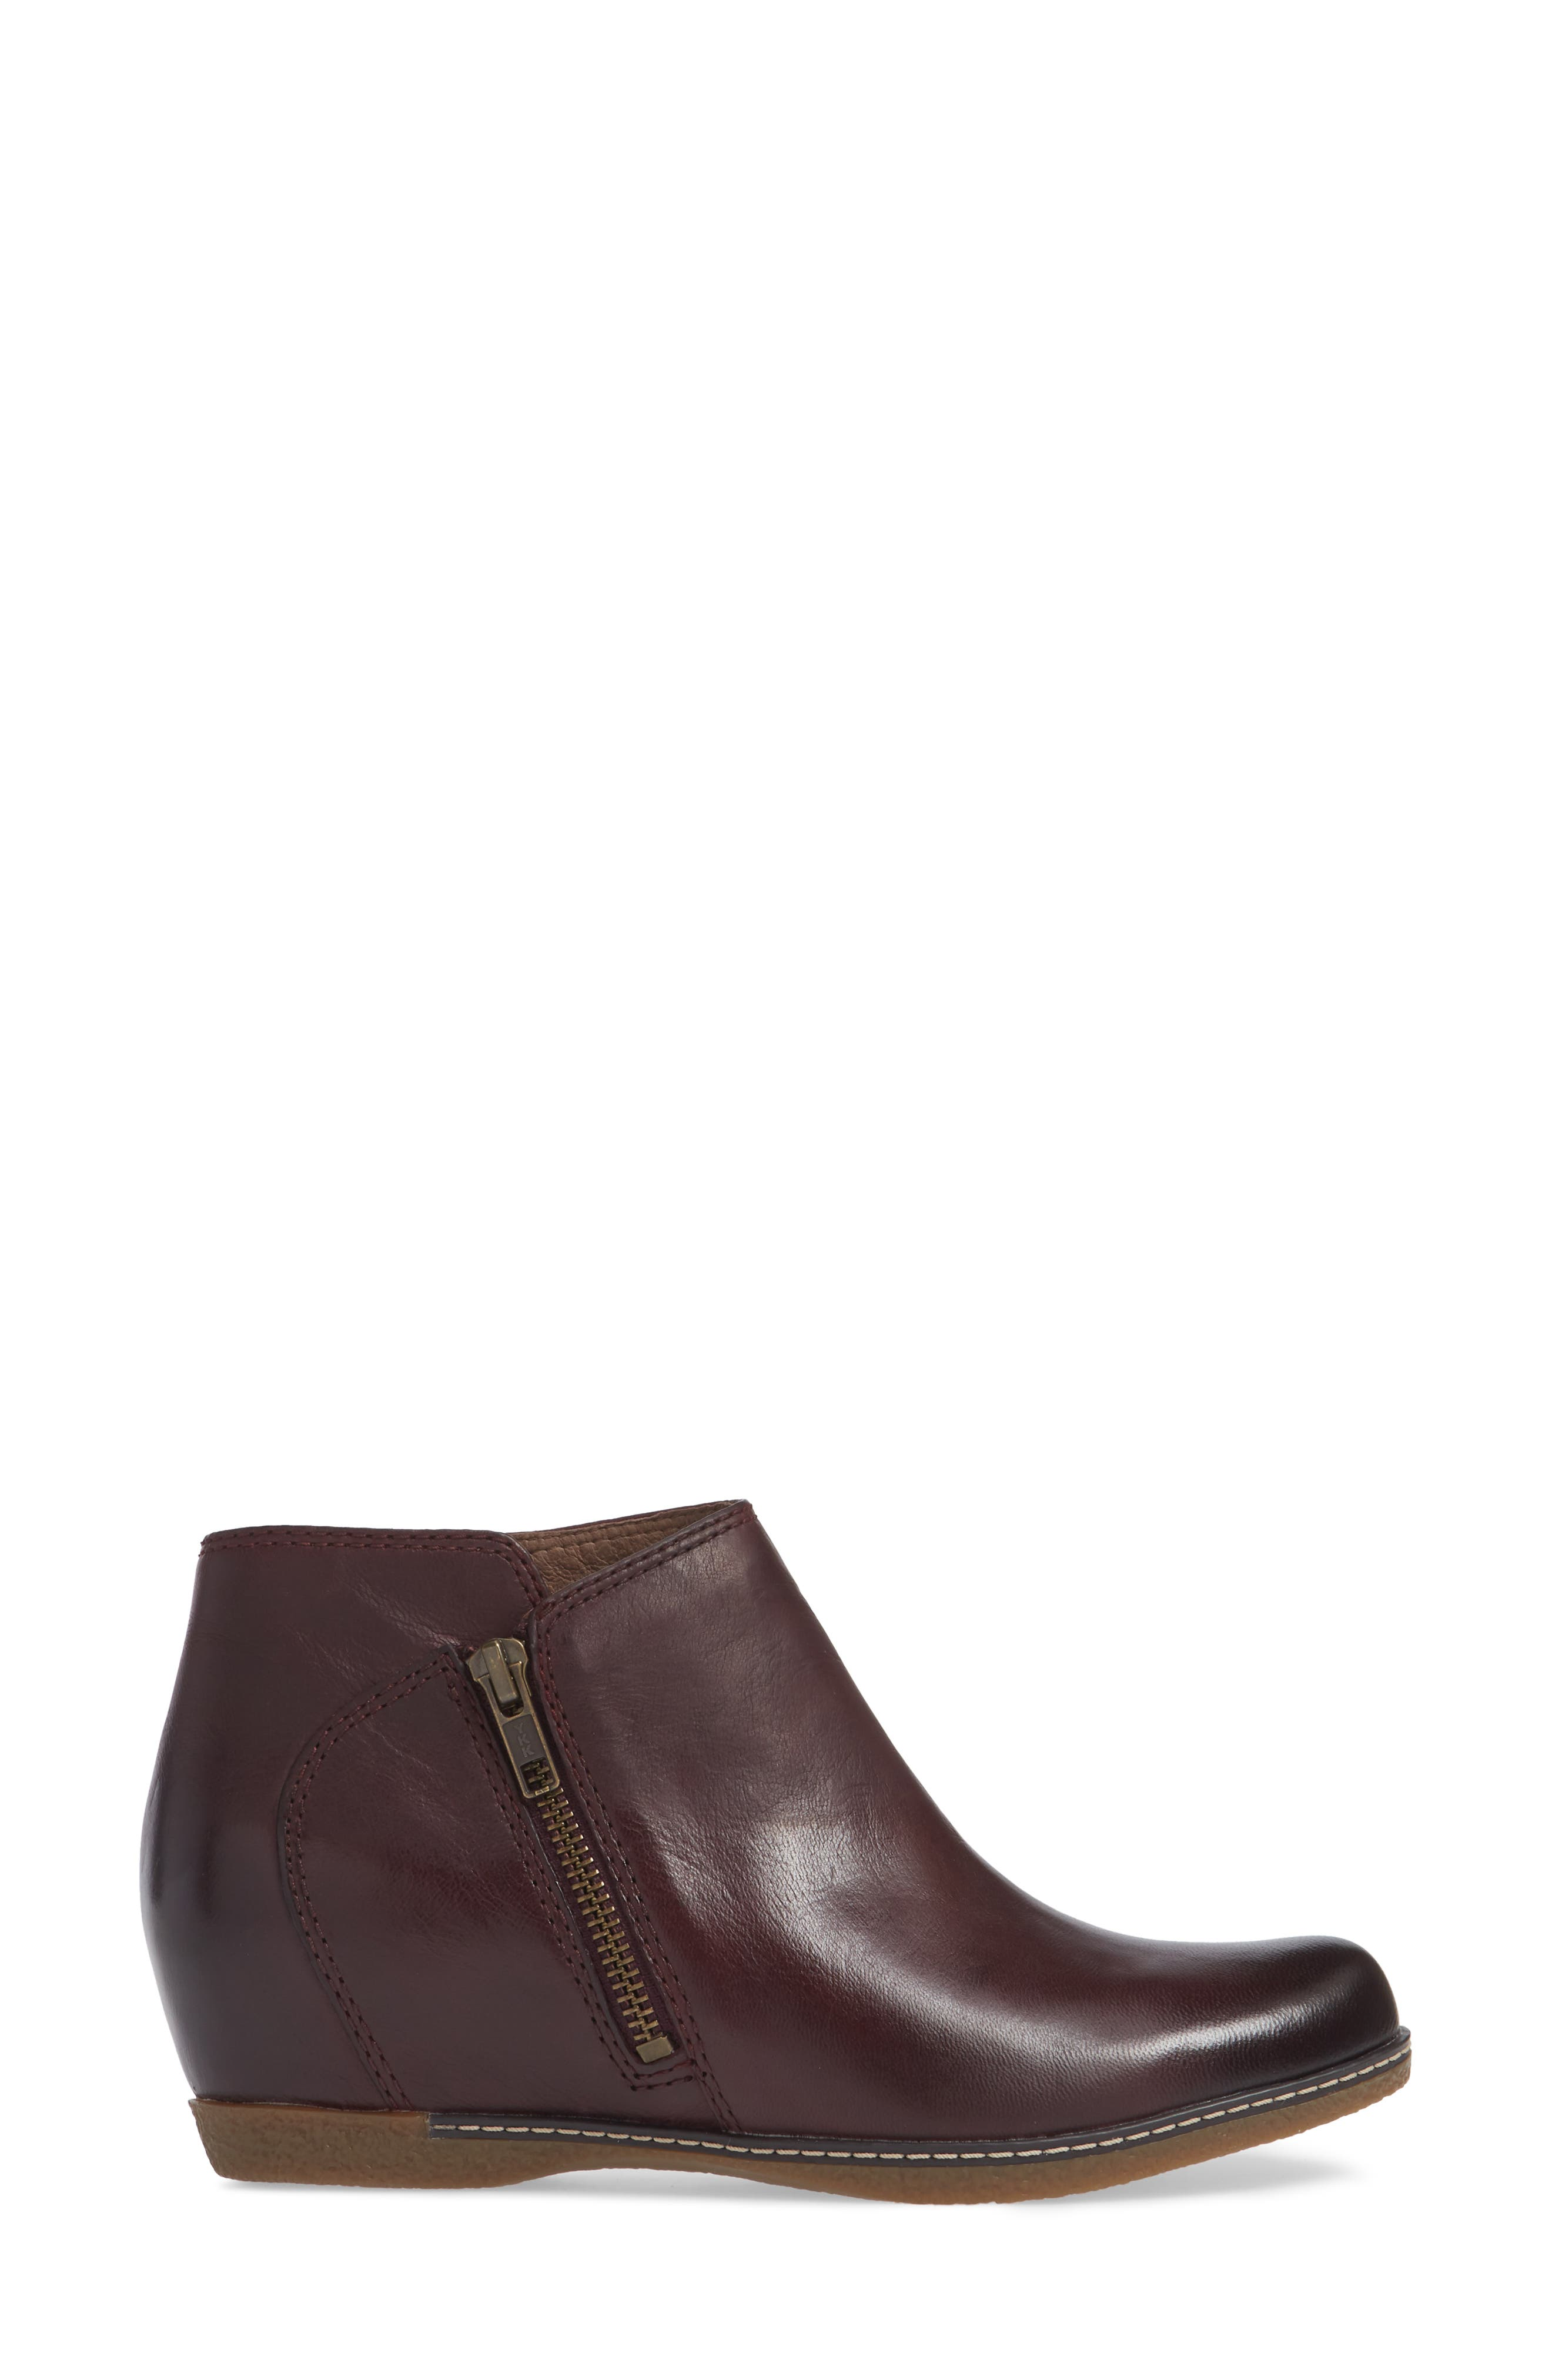 Leyla Bootie,                             Alternate thumbnail 3, color,                             WINE BURNISHED LEATHER